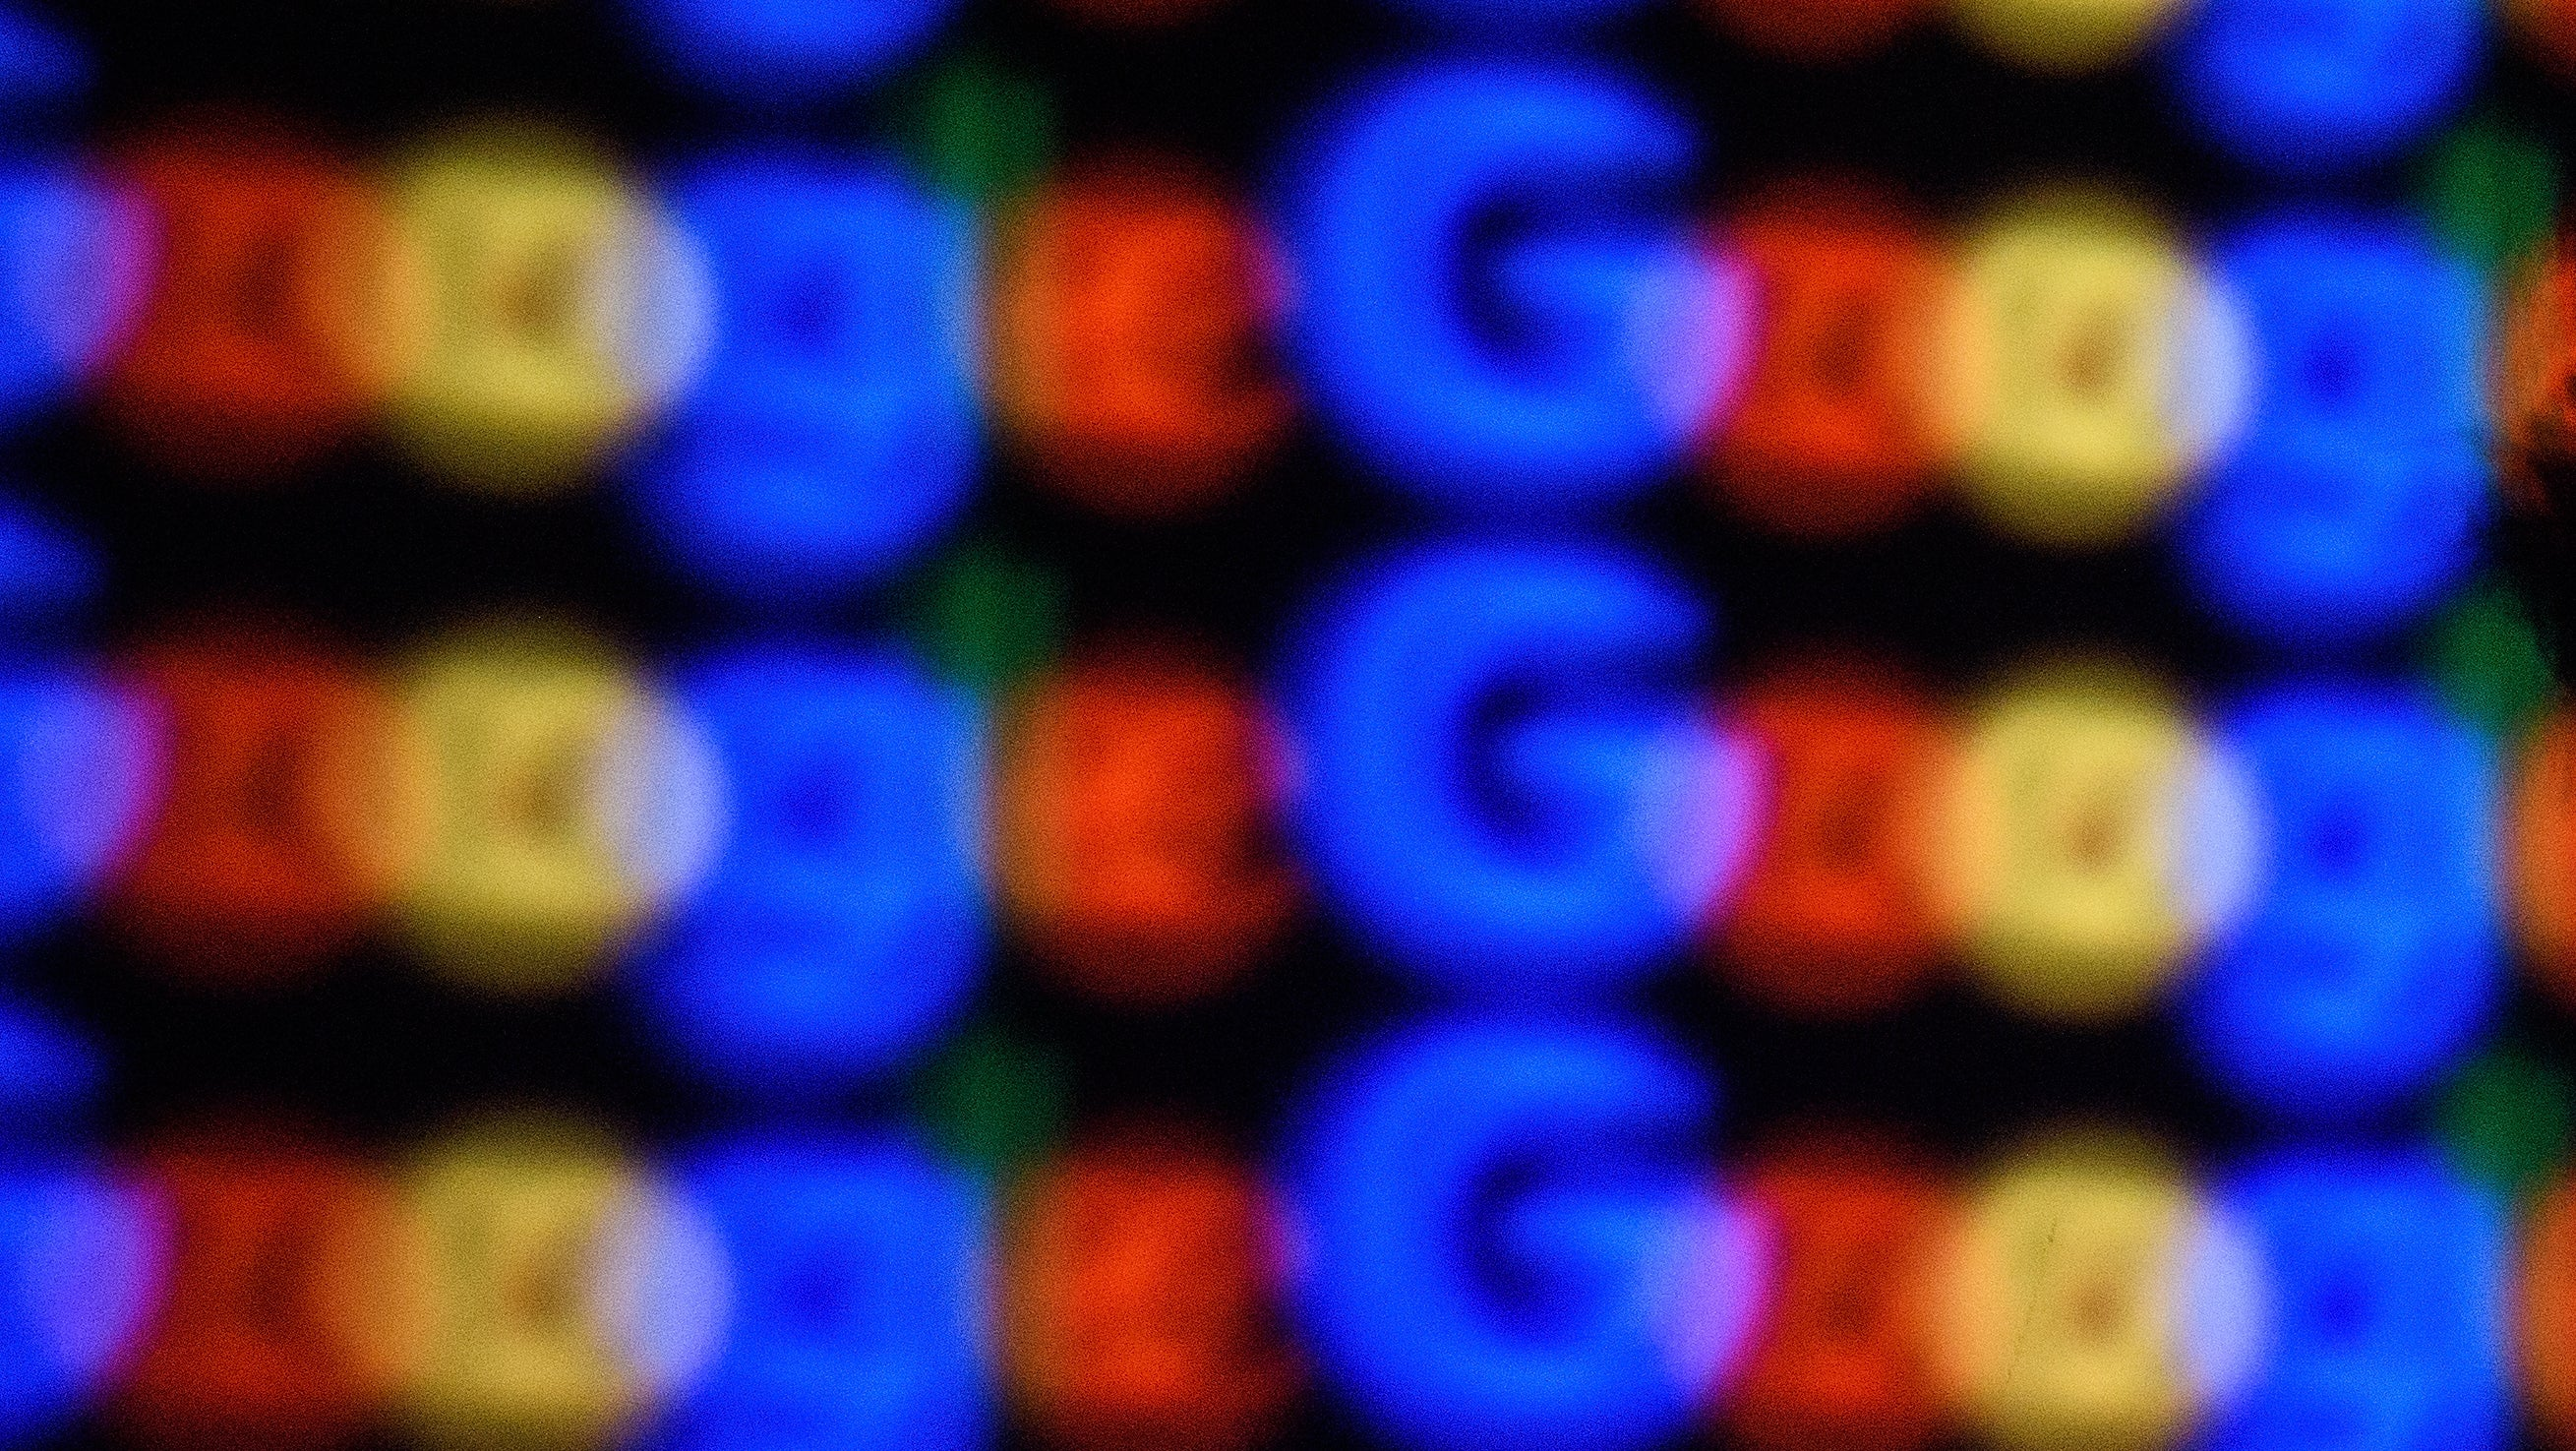 Google Pledges $25 Million For 'Good' AI, Totally Isn't Trying To Make You Forget That Military AI Stuff